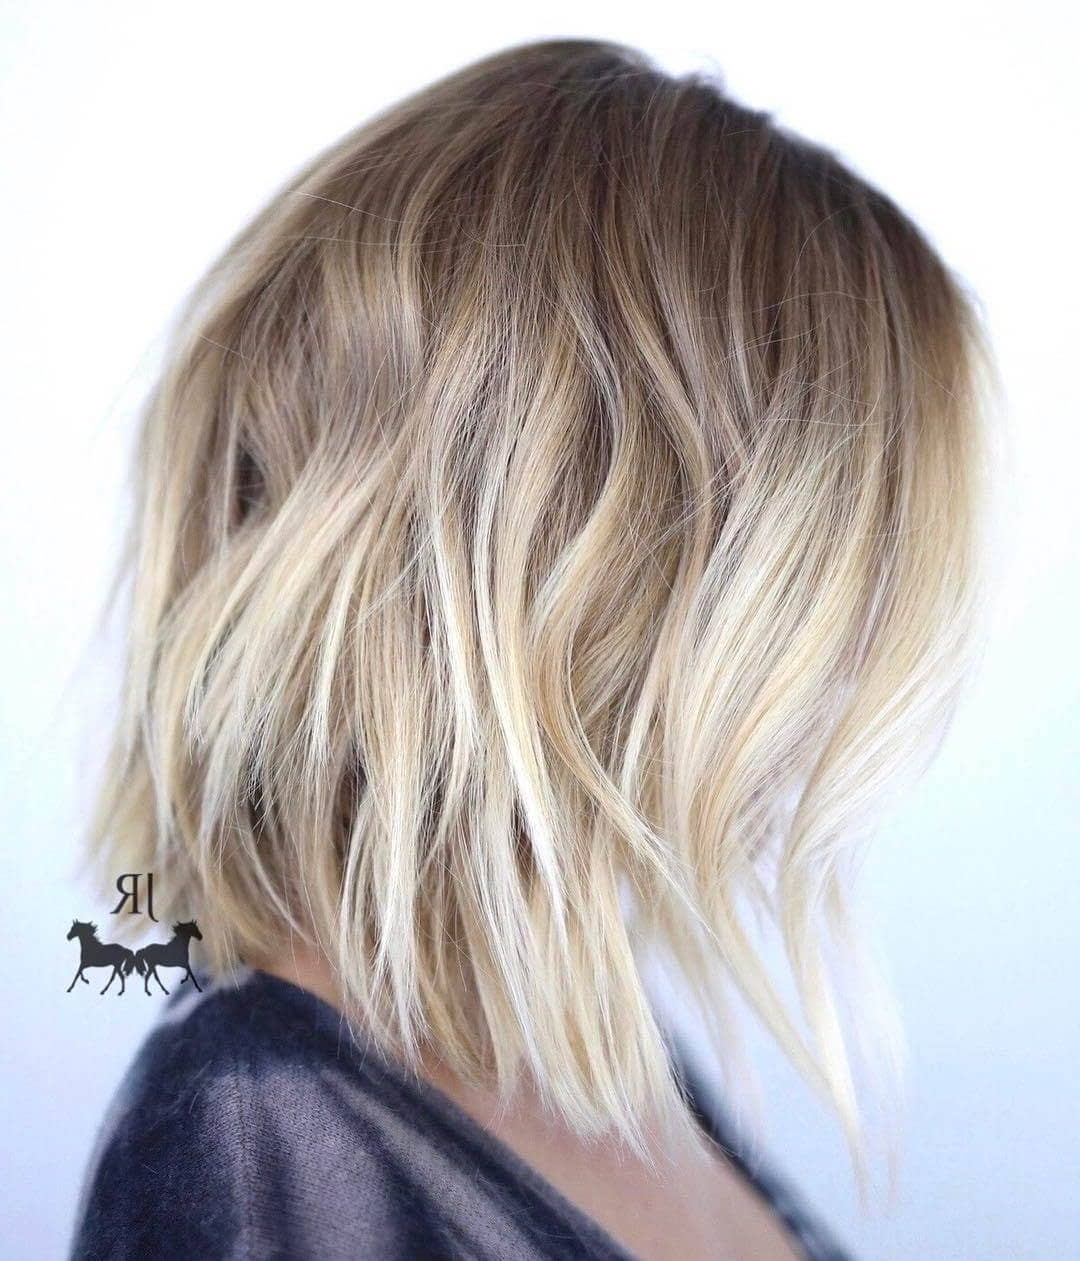 50 Fresh Short Blonde Hair Ideas To Update Your Style In 2018 With Regard To Messy Shaggy Inverted Bob Hairstyles With Subtle Highlights (View 14 of 20)